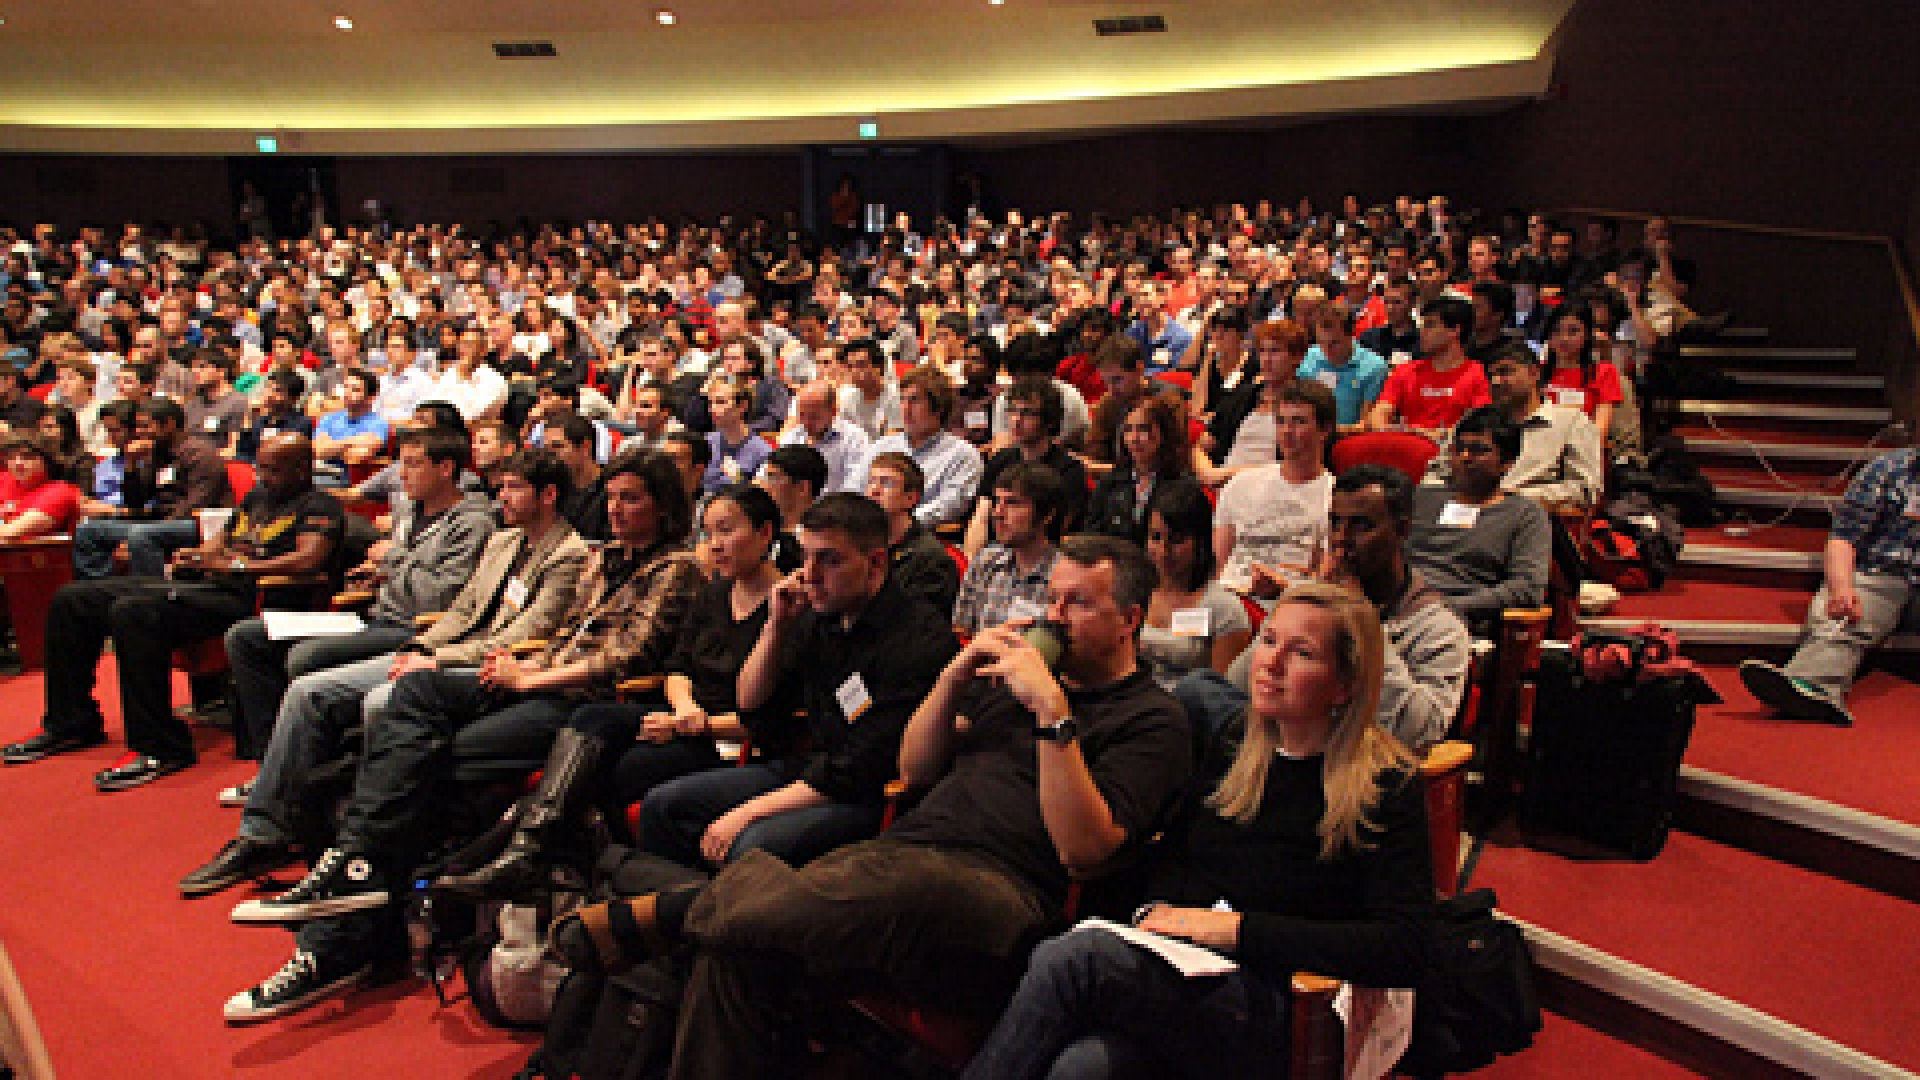 Paul Graham, Jessica Livingston, and crowd from YCombinator's Startup School, held at Stanford University.